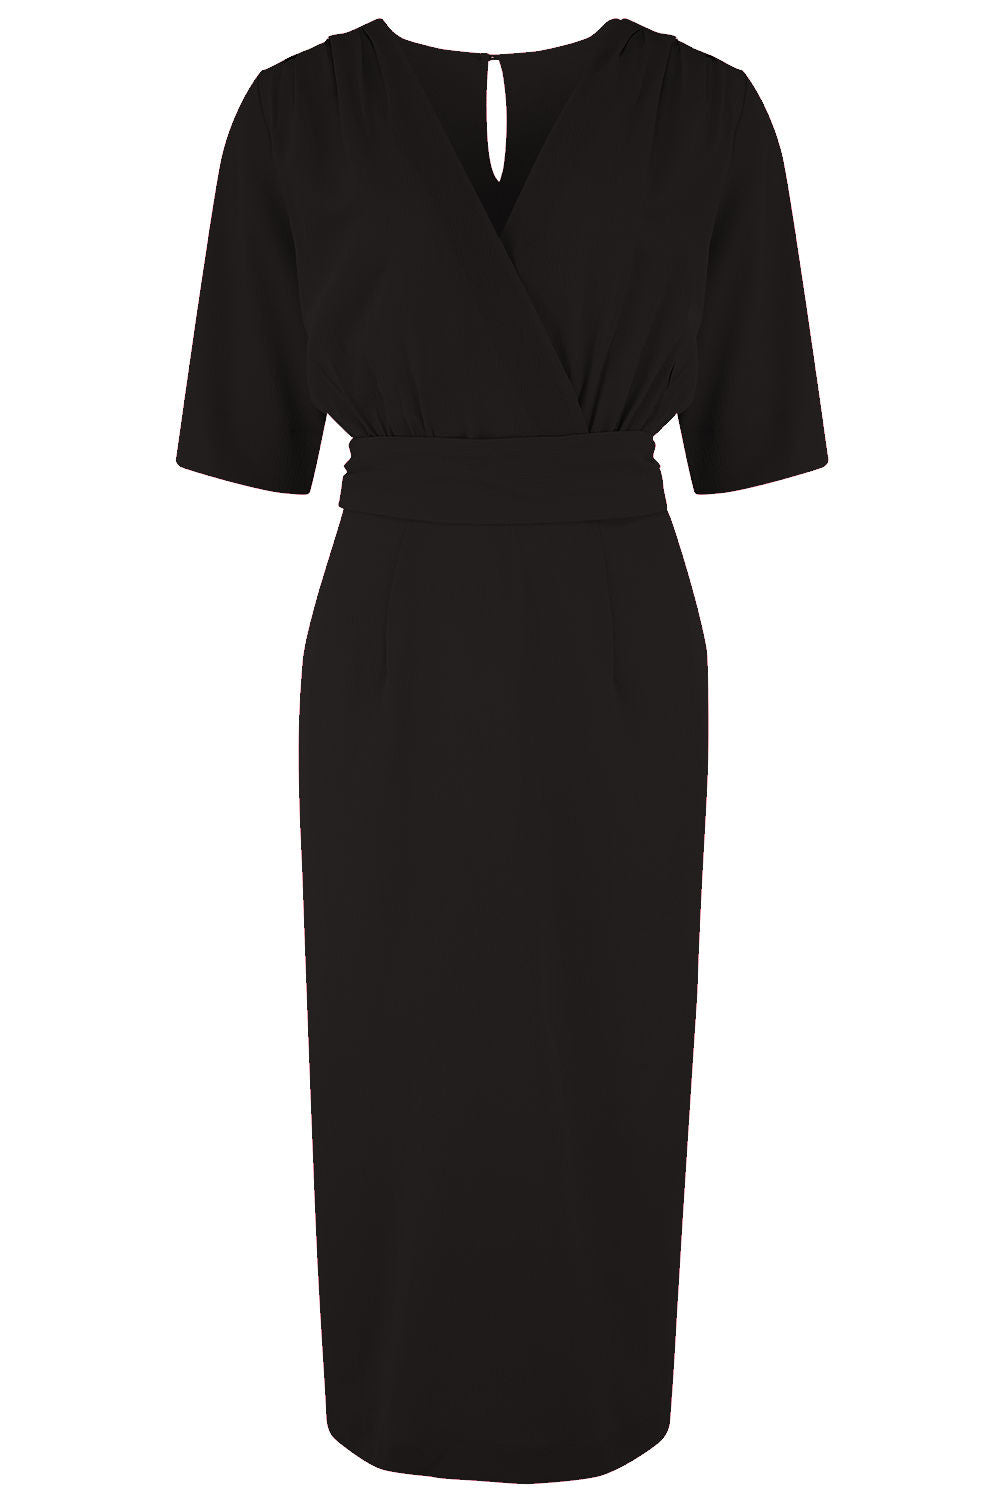 1950s Style Clothing & Fashion The Evelyn Wiggle Dress in Black True Late 40s Early 50s Vintage Style £49.00 AT vintagedancer.com